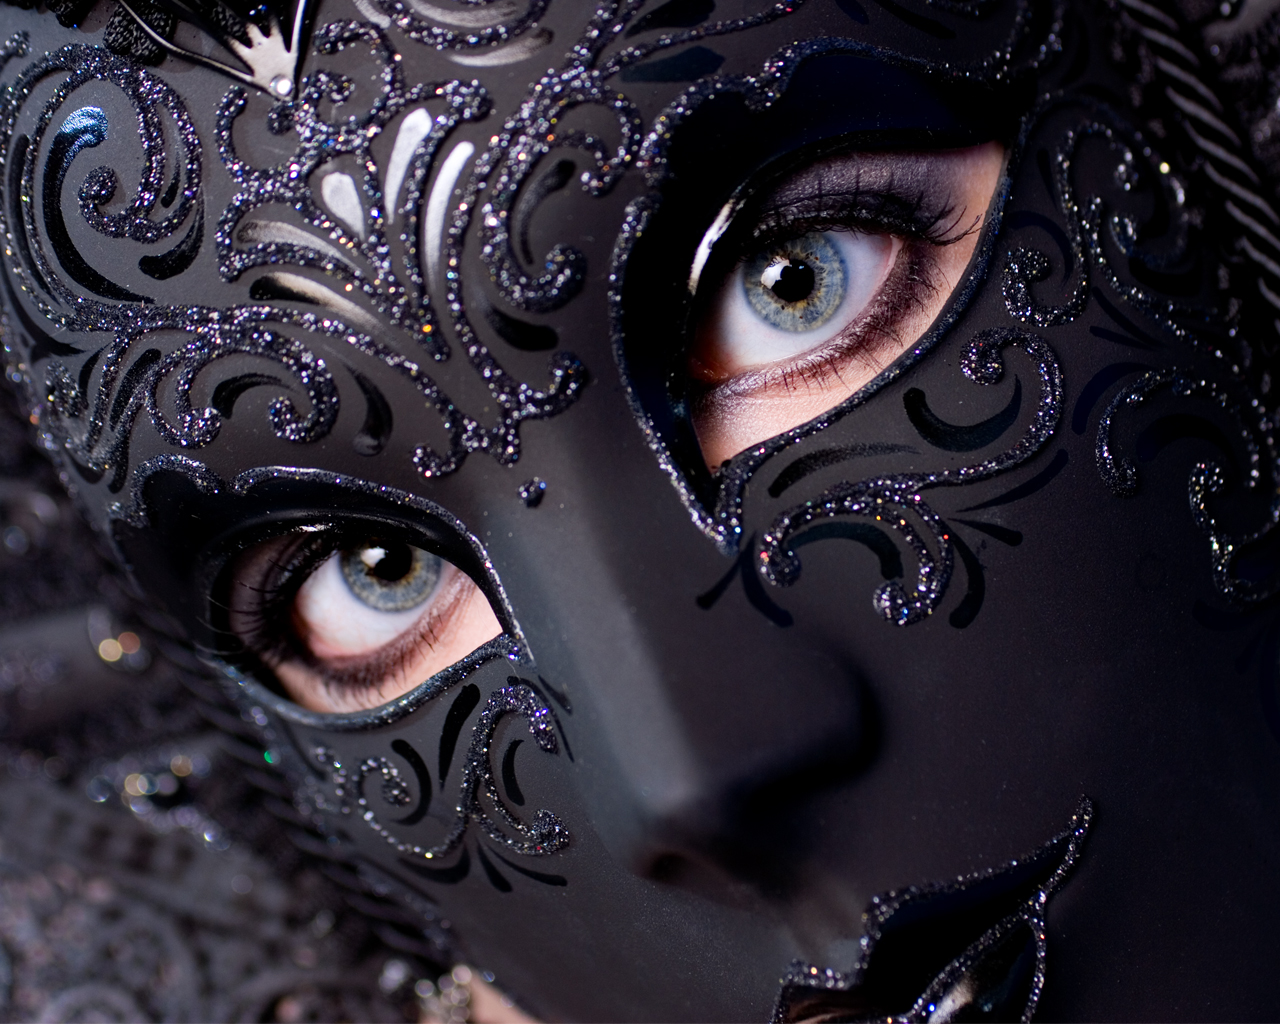 Masquerade Mask Covering Whole Face